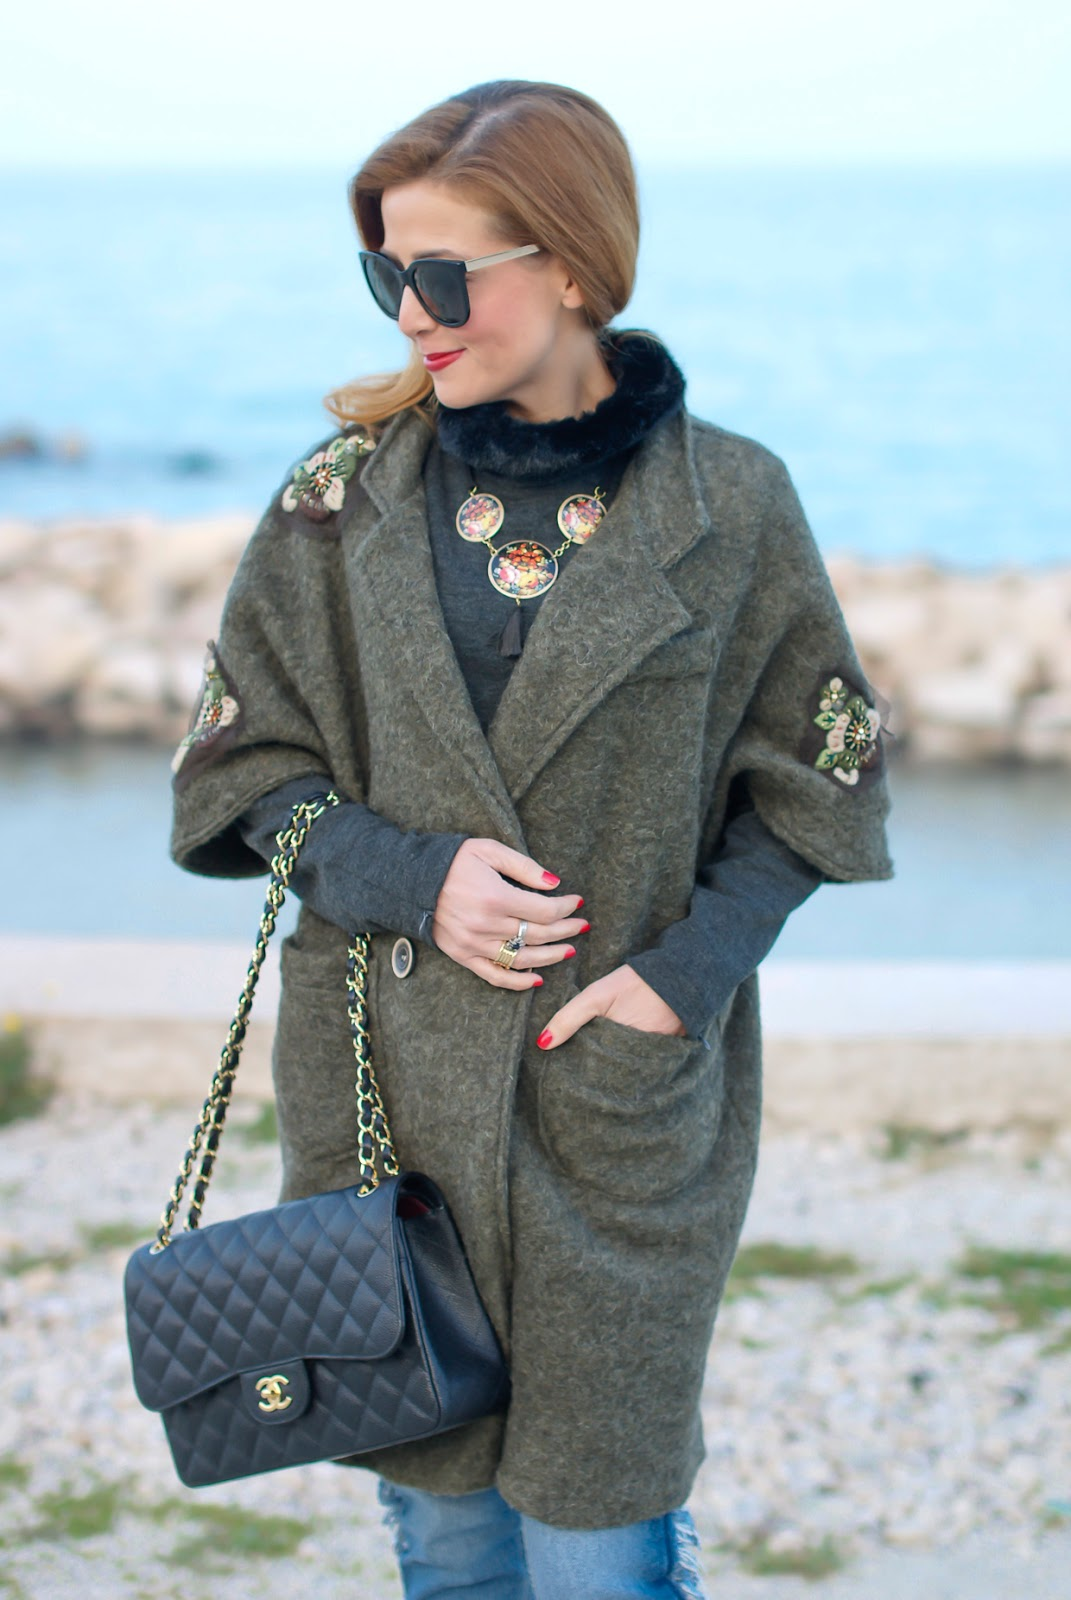 Trendyberry embroidered coat for a street style casual look, Chanel 2.55 flap bag on Fashion and Cookies fashion blog, fashion blogger style